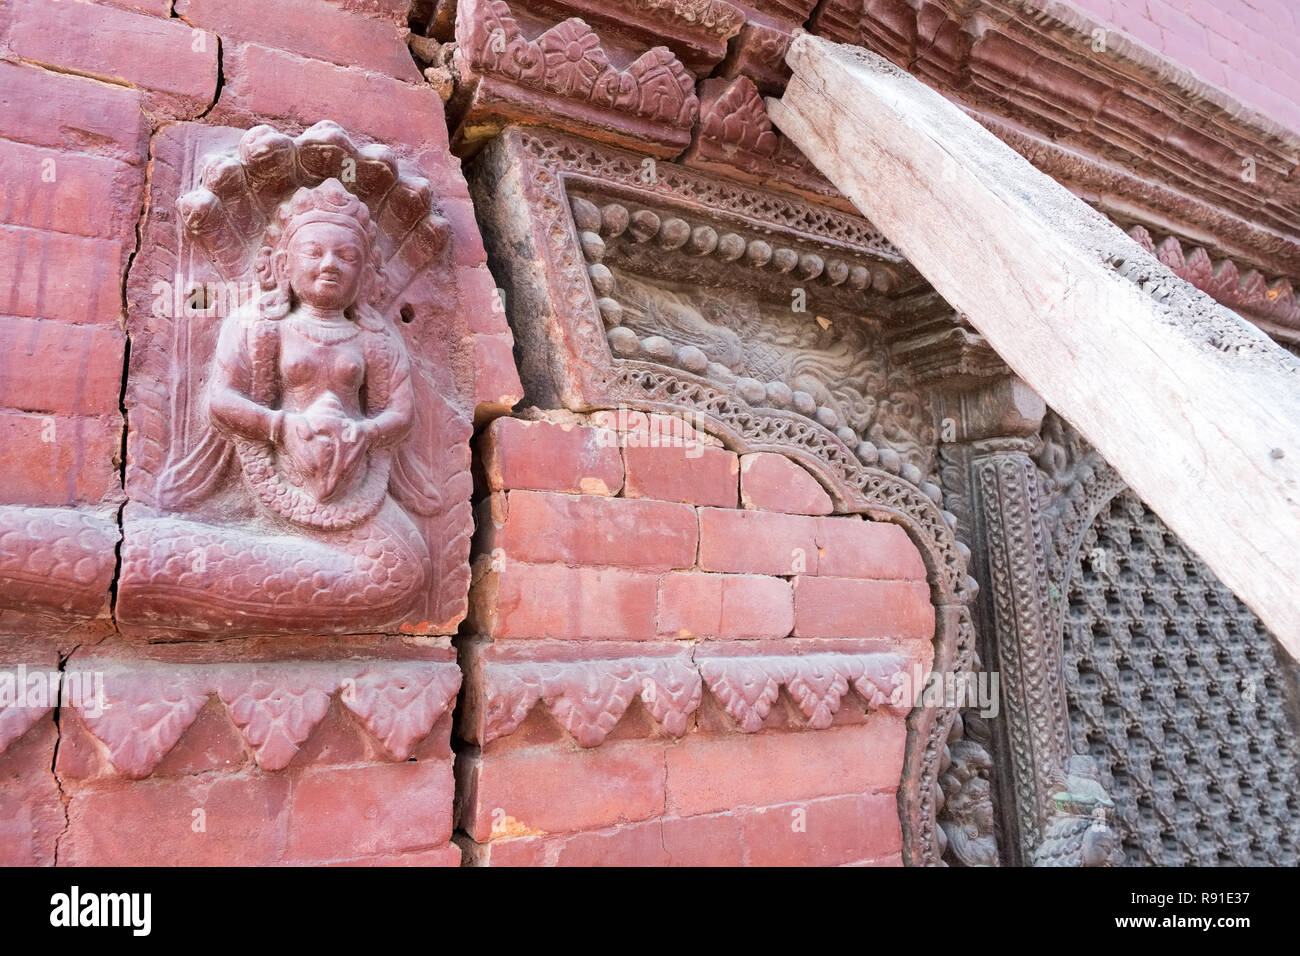 Structural damage to stonework of temples in Durbar Square, Kathmandu, Nepal, caused by the 2015 earthquake - Stock Image